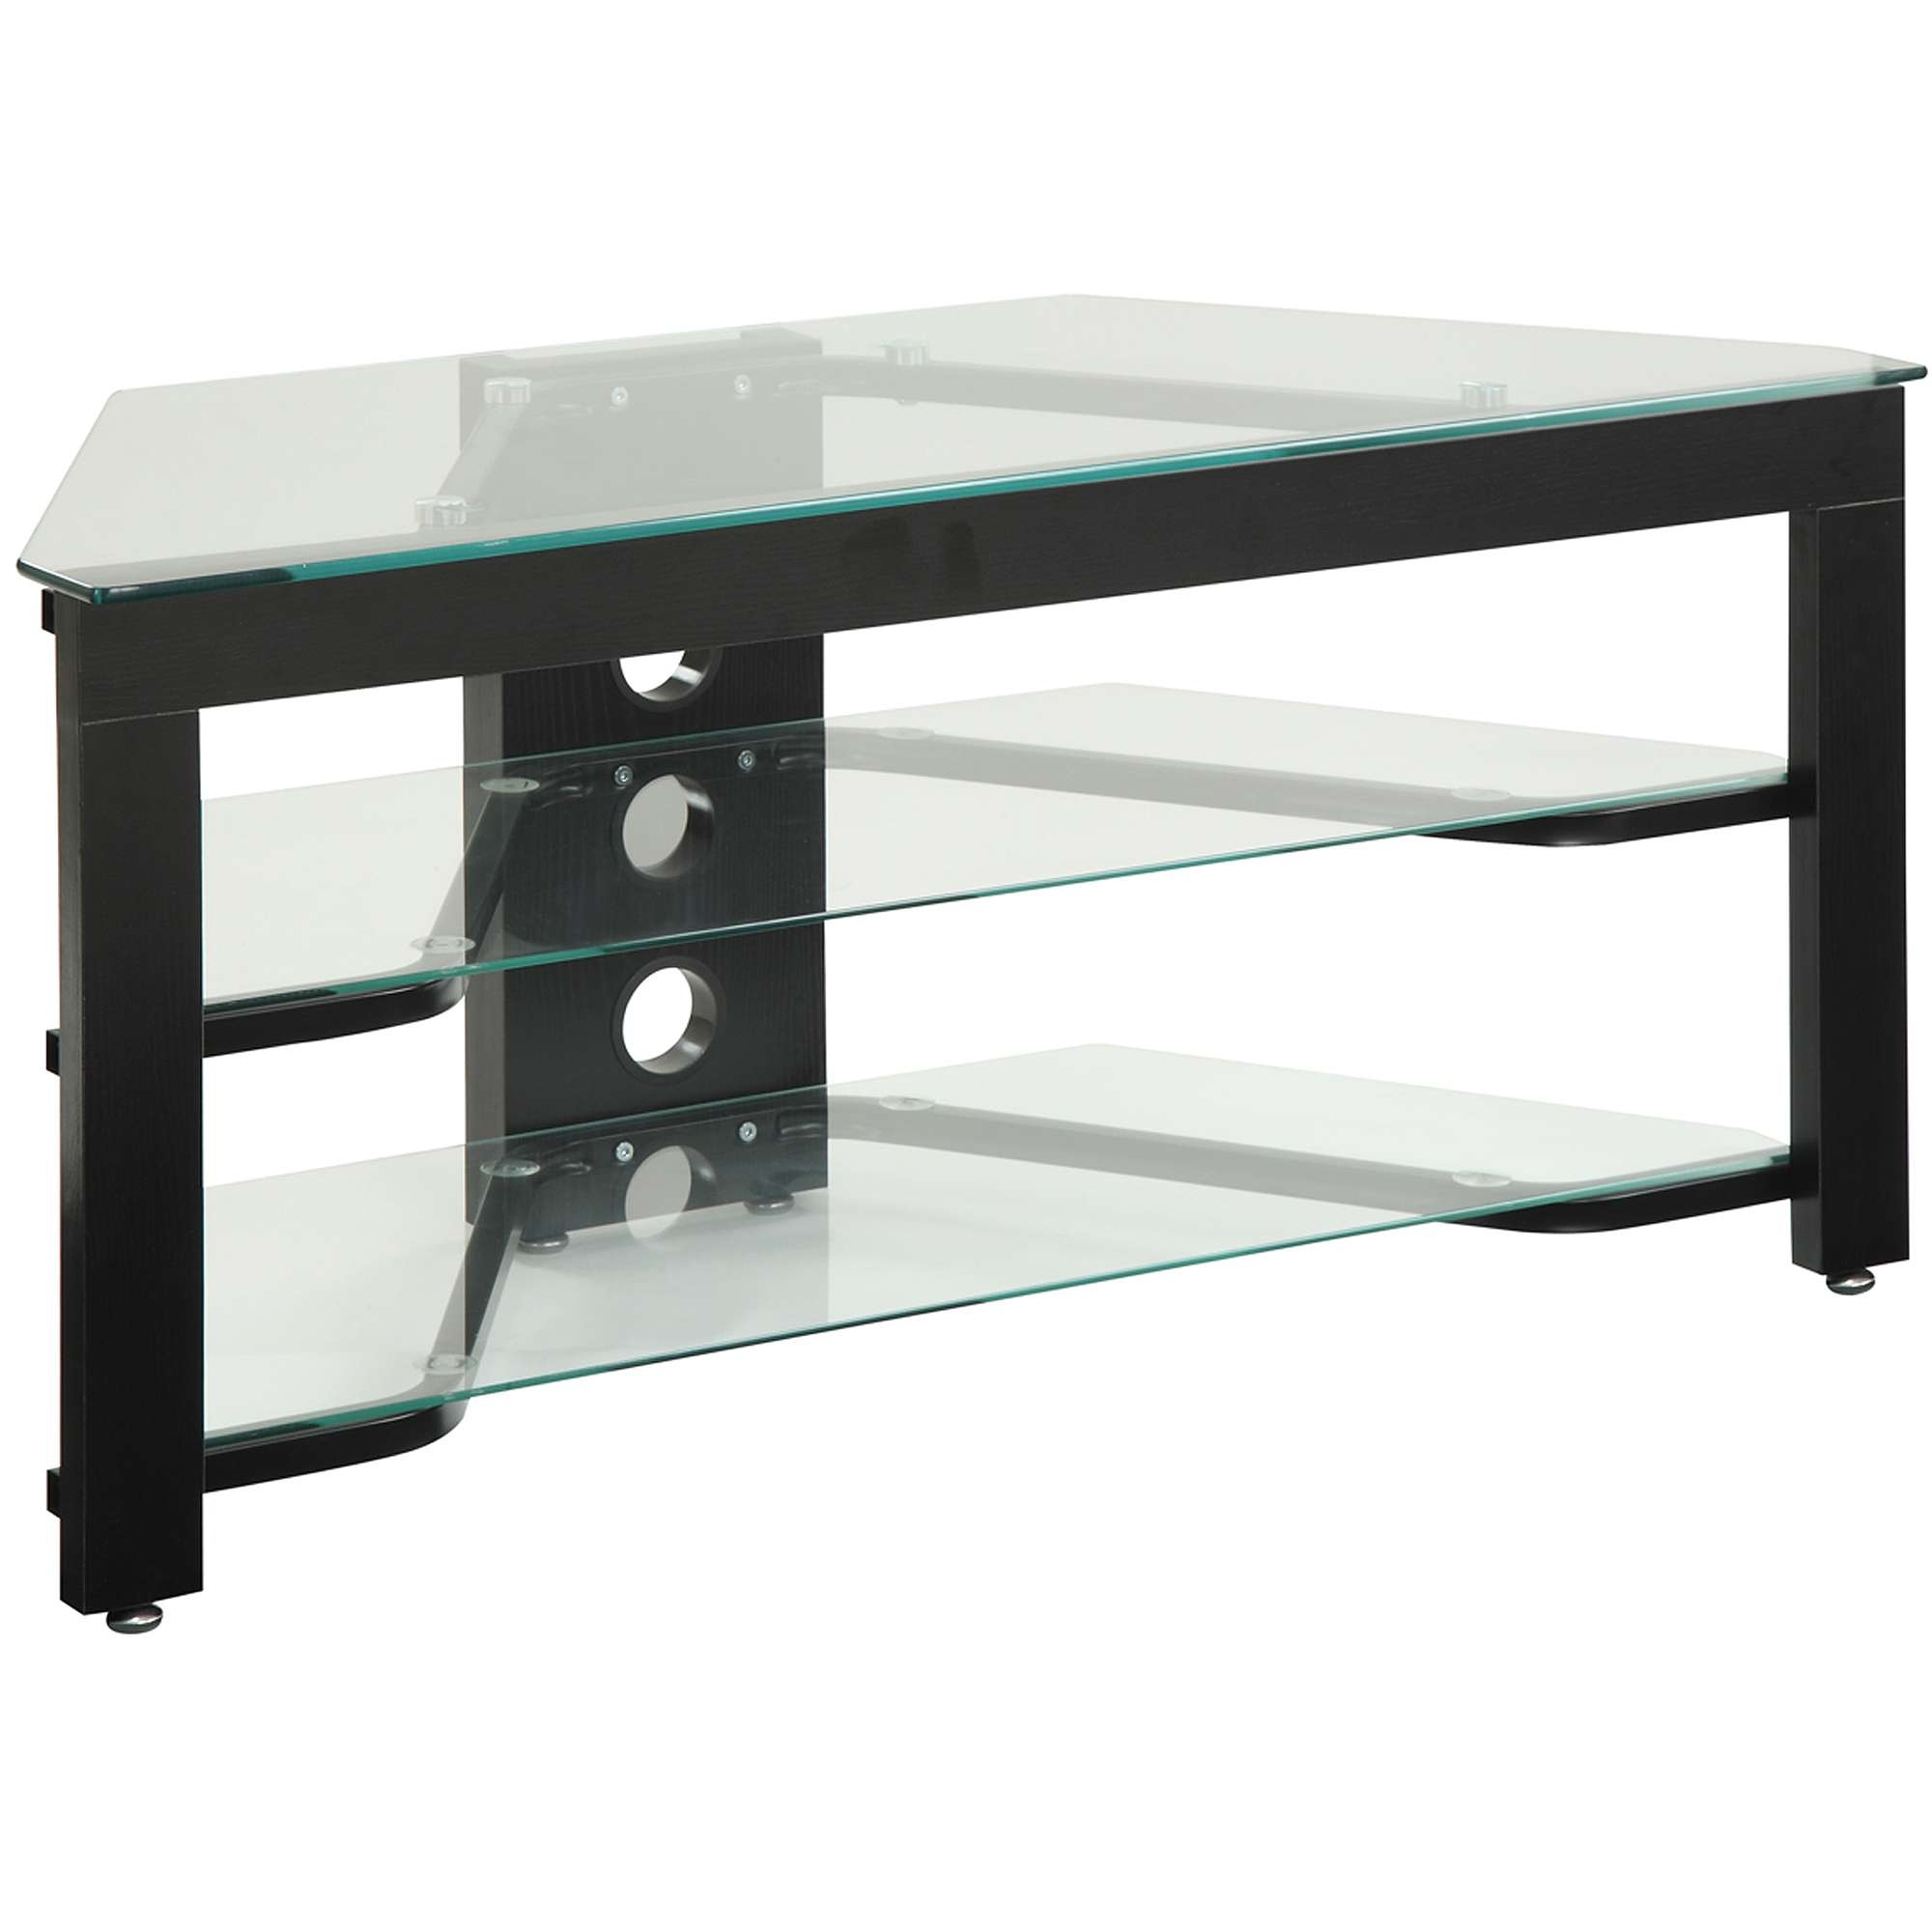 Tv : Product Amazing Glass Tv Cabinets Contemporary Tv Wall Unit Inside Glass Tv Cabinets (View 17 of 20)